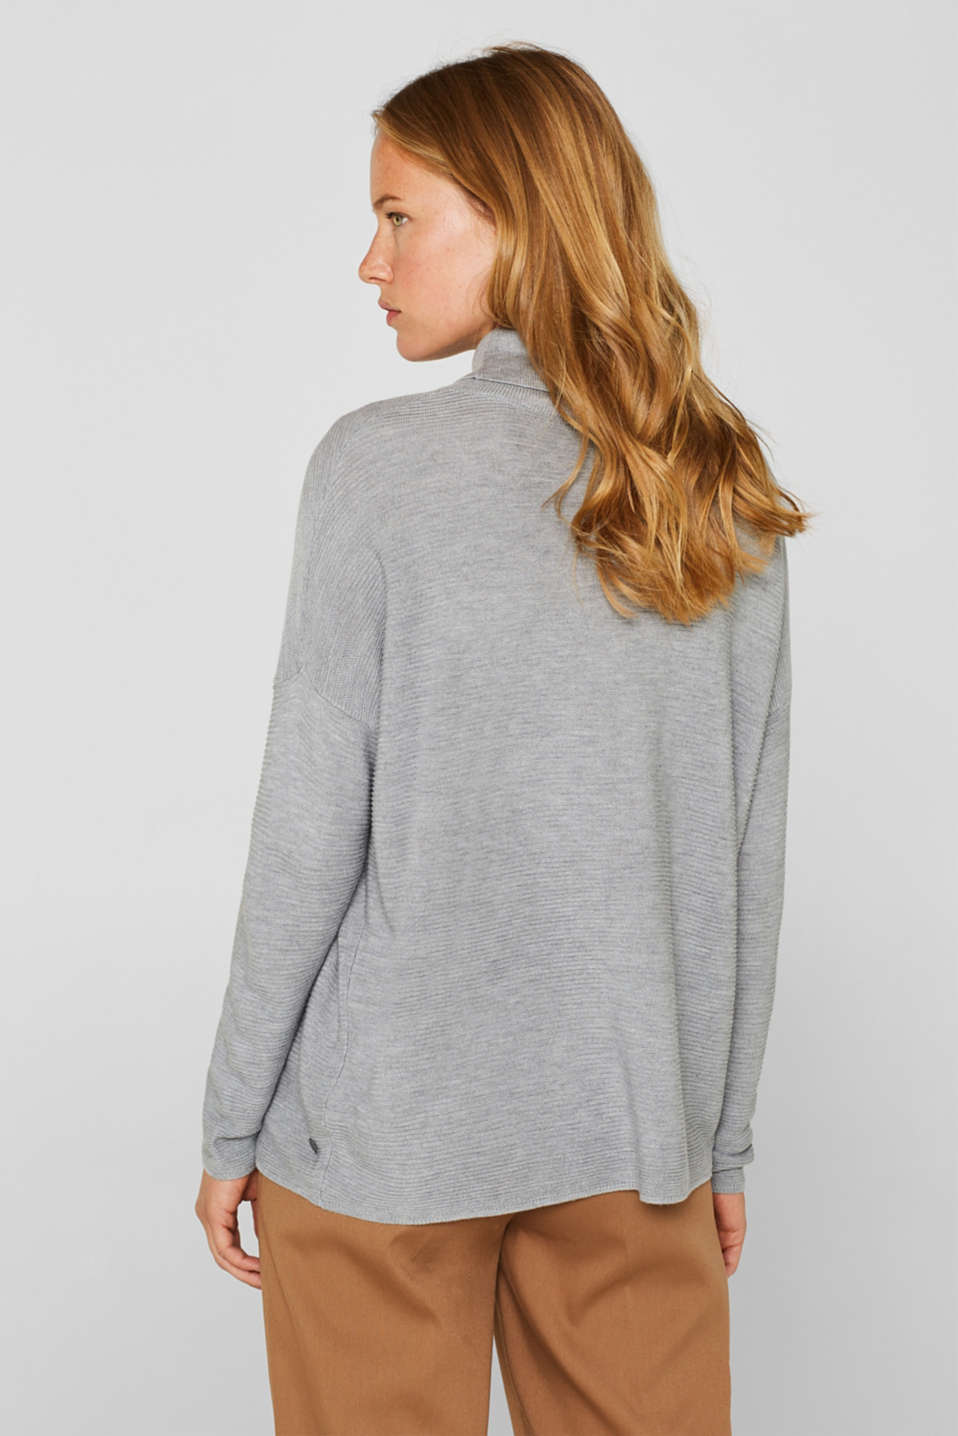 Oversized jumper with a ribbed texture, MEDIUM GREY 5, detail image number 3